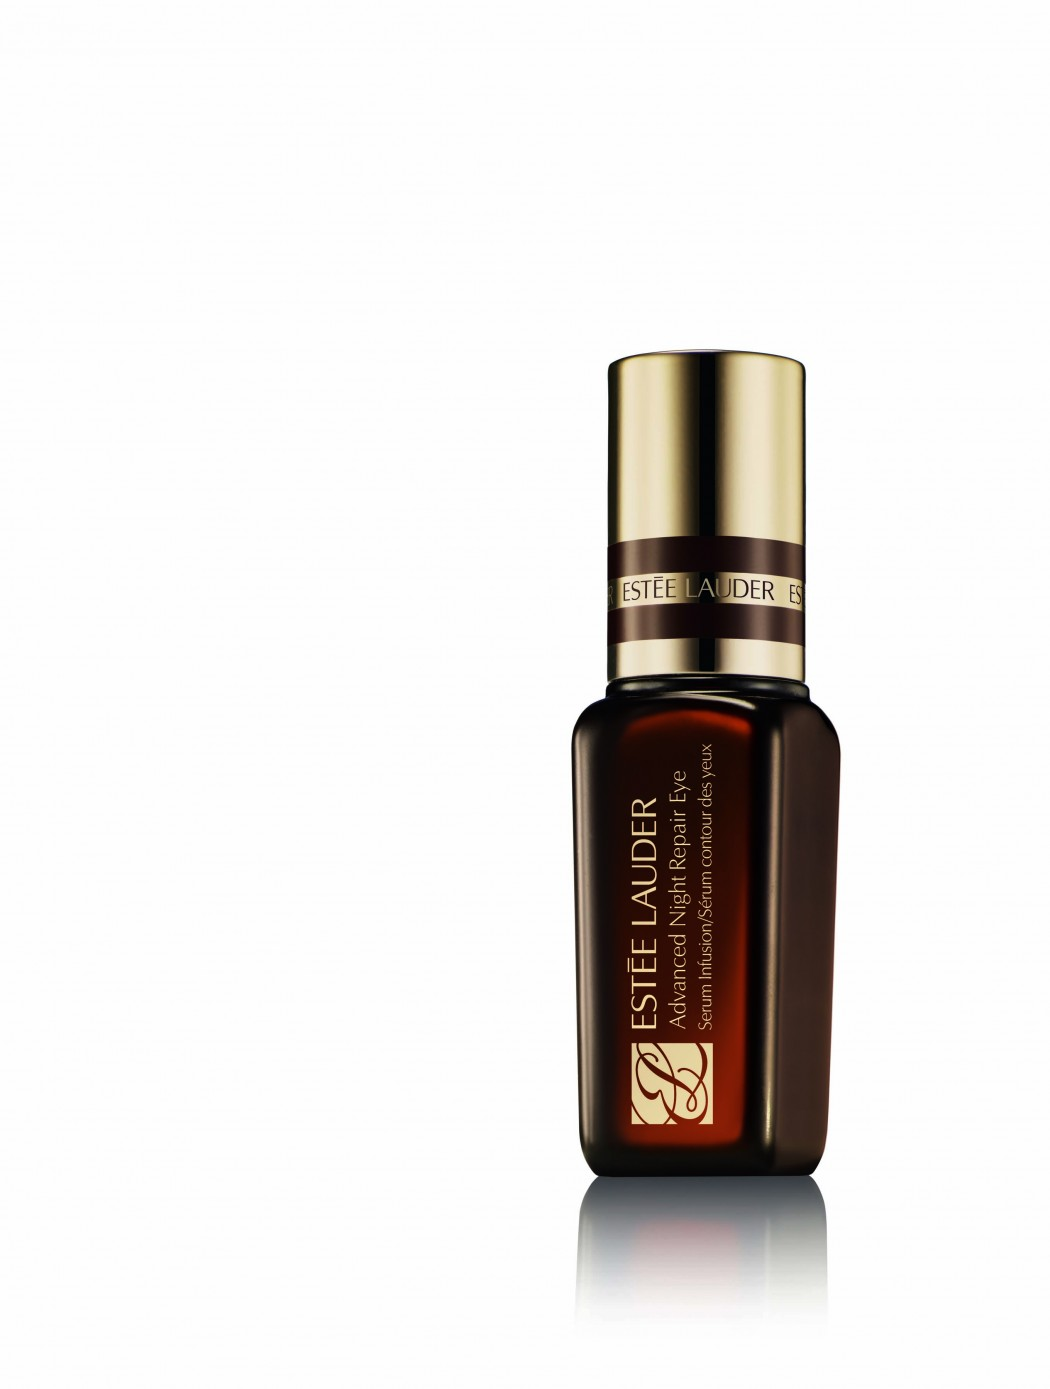 sérum para el contorno de los ojos Advanced Night Repair Eye Serum de Estée Lauder